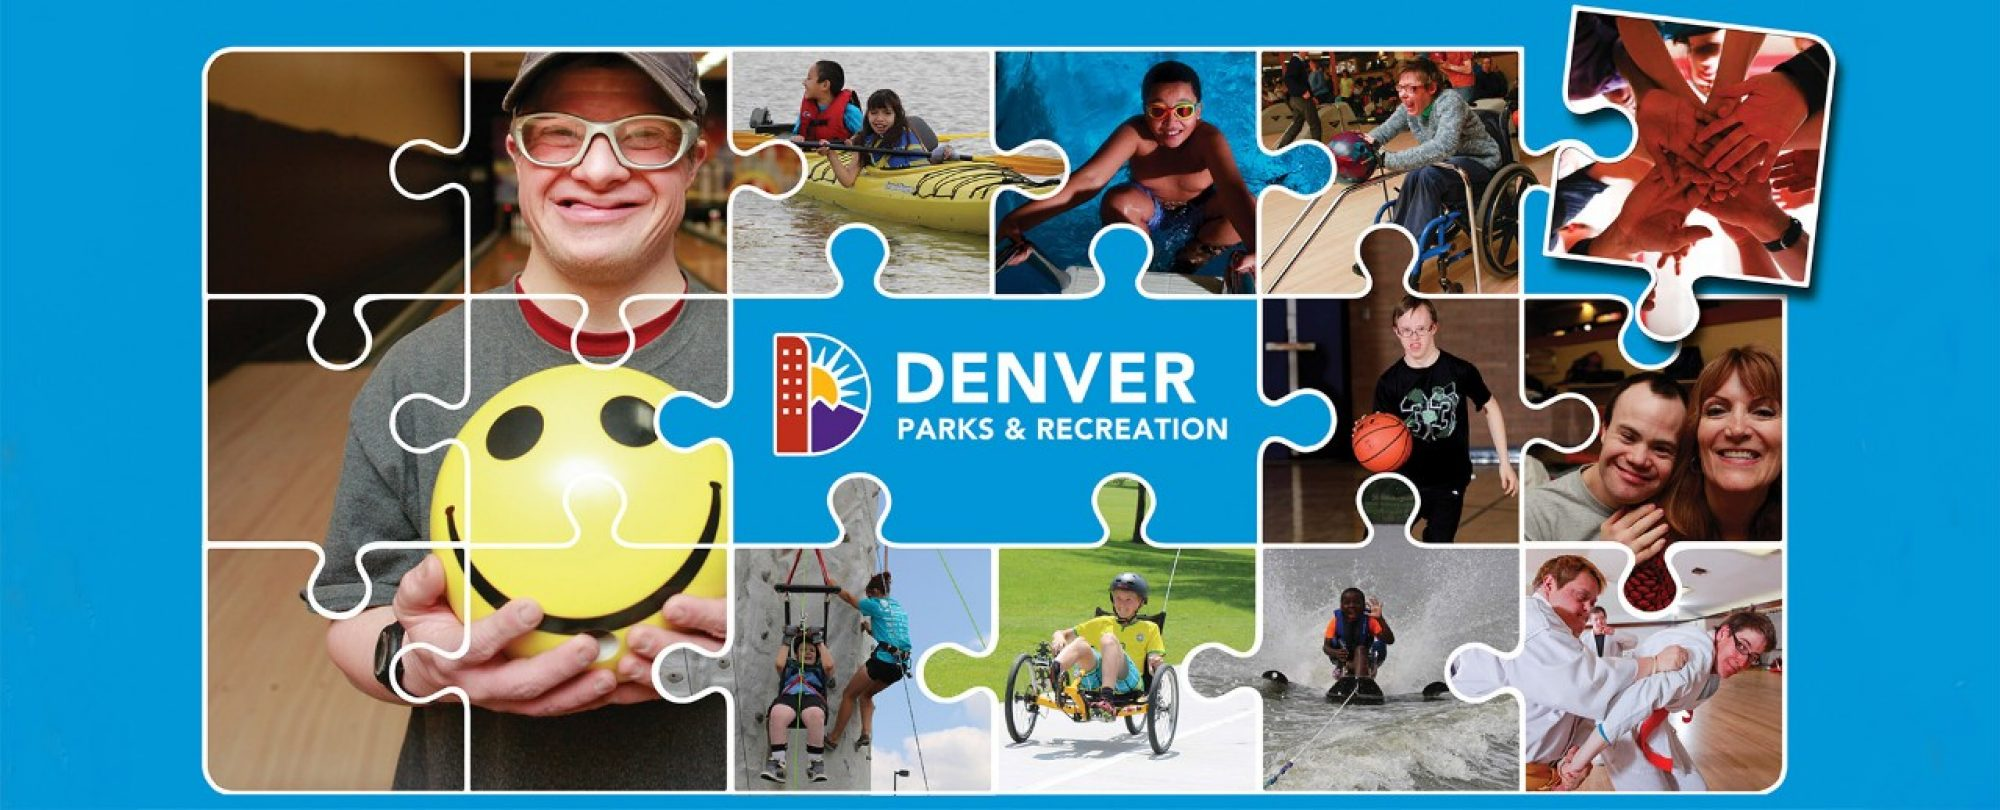 Adaptive Recreation supporting inclusion and diversity